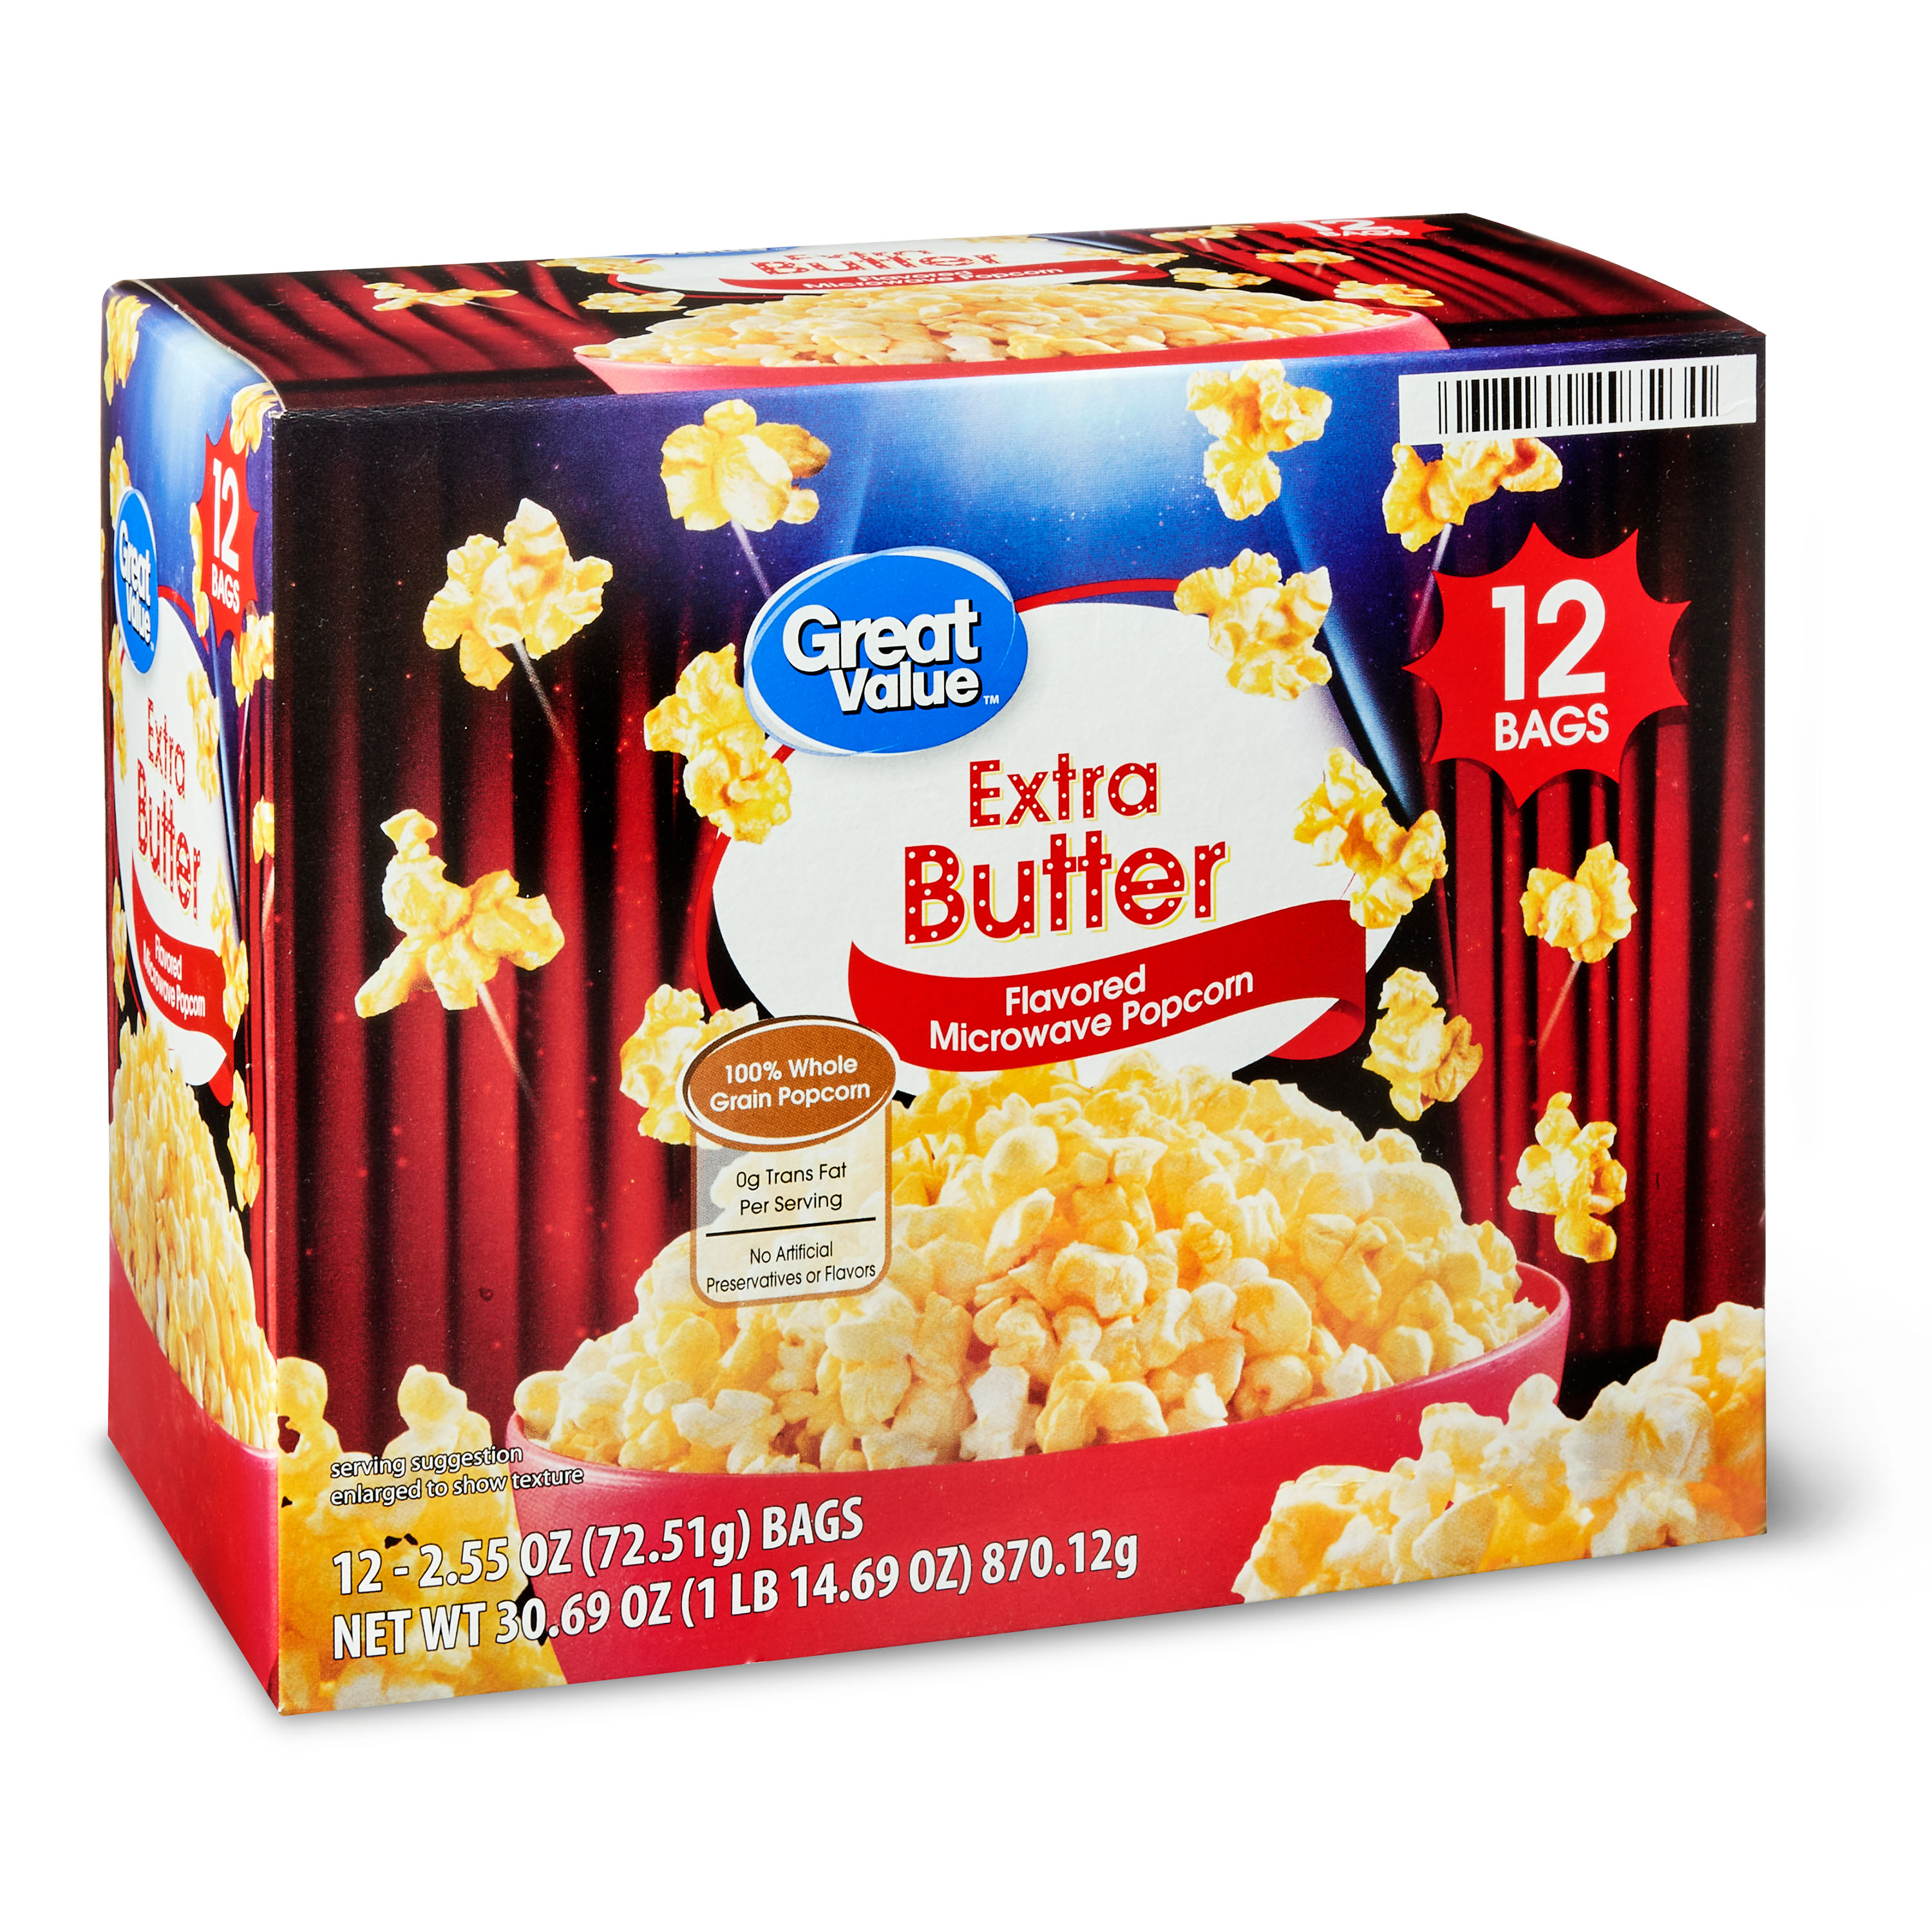 great value extra butter flavored microwave popcorn 12 count walmart com